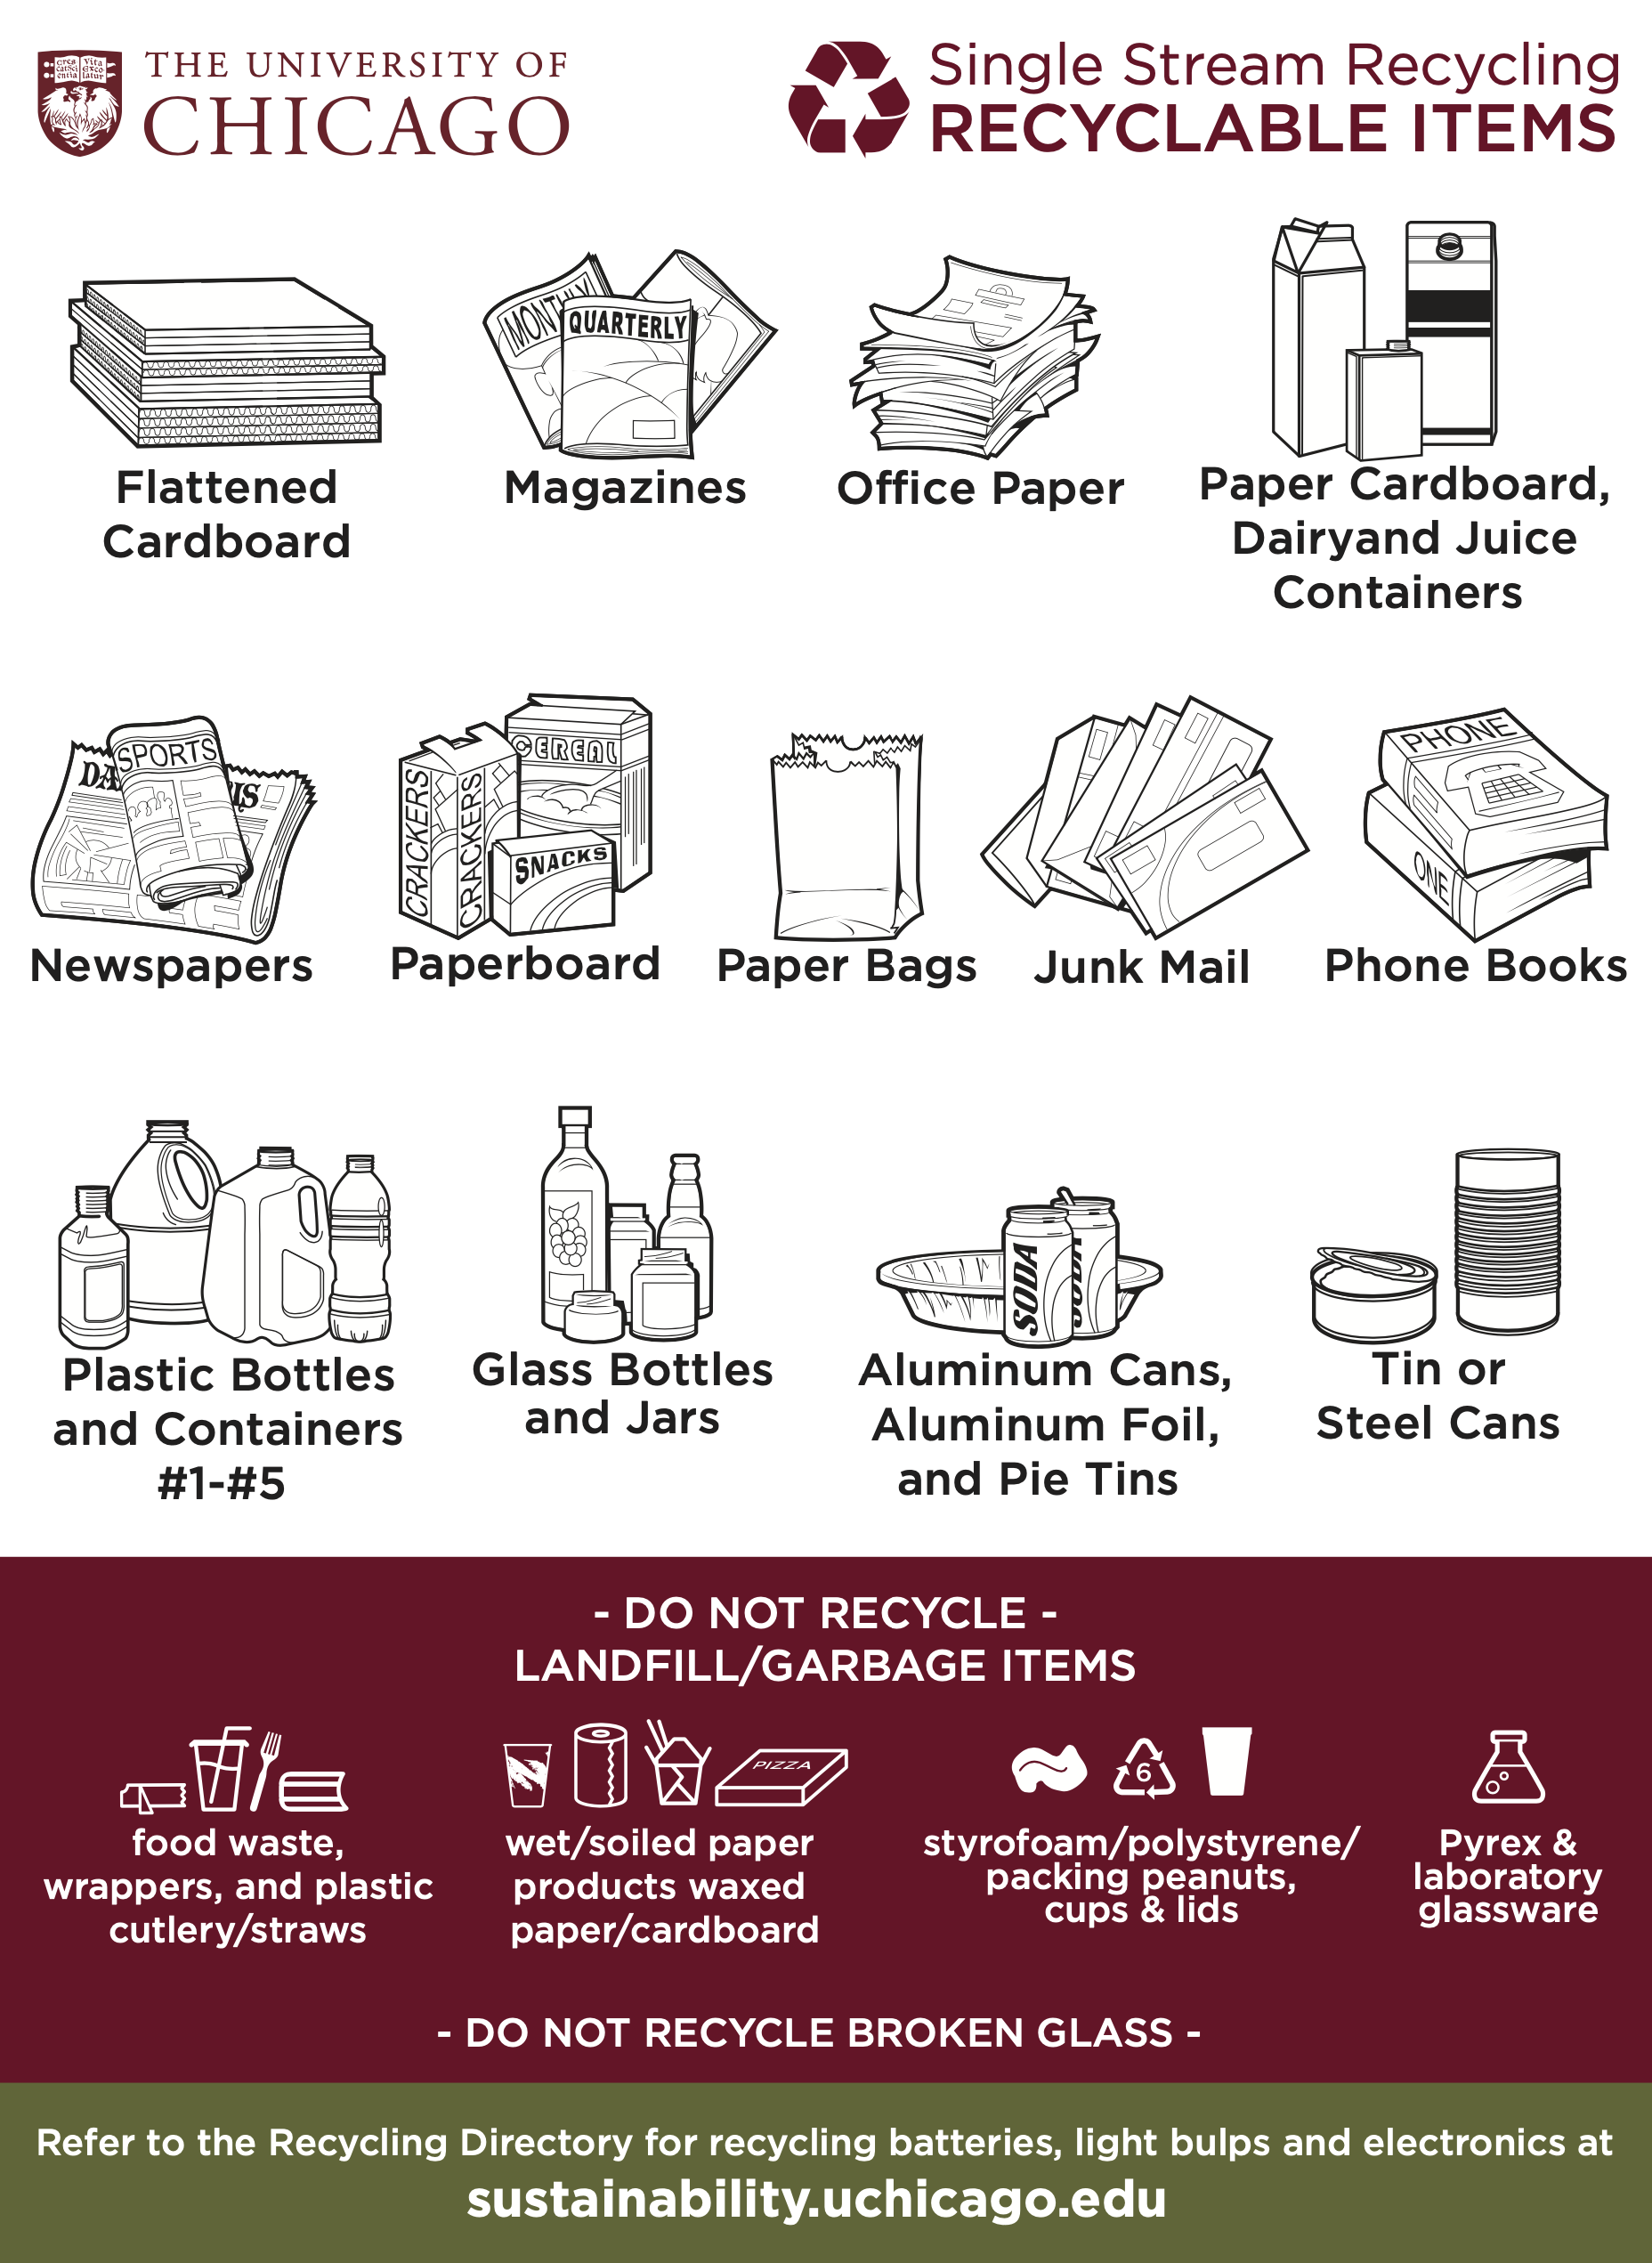 Single Stream Recycling Poster